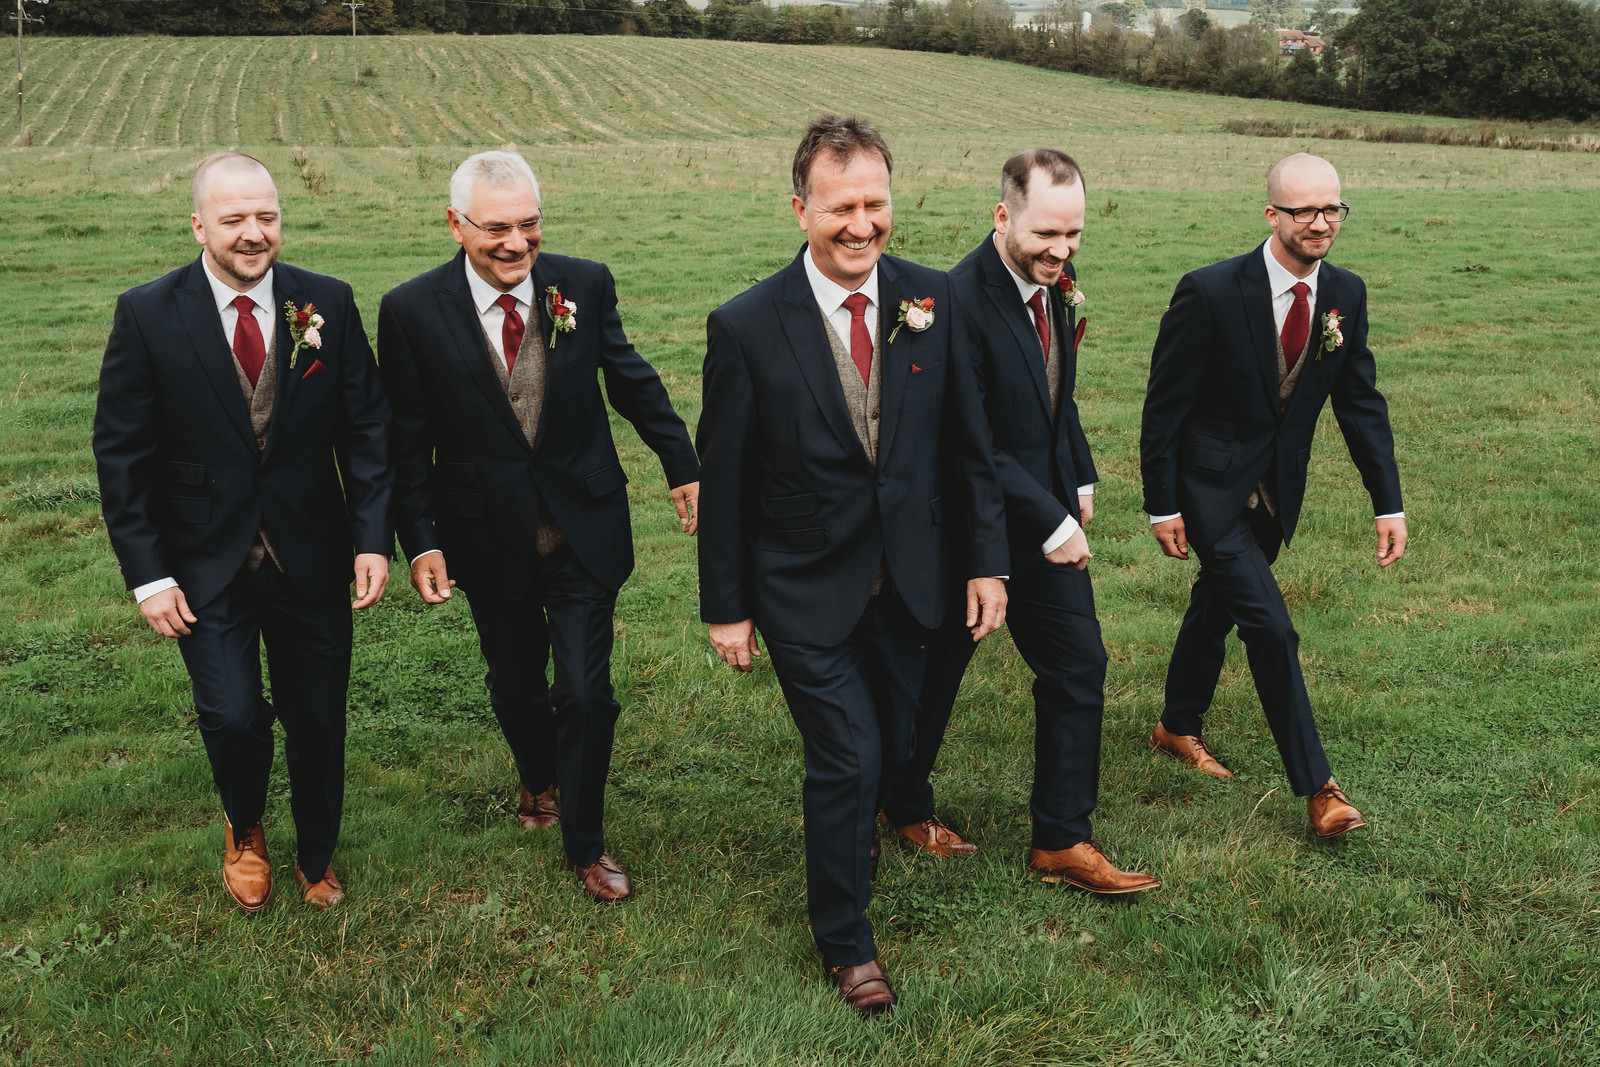 Groom and groomsmen smile as they walk to the venue